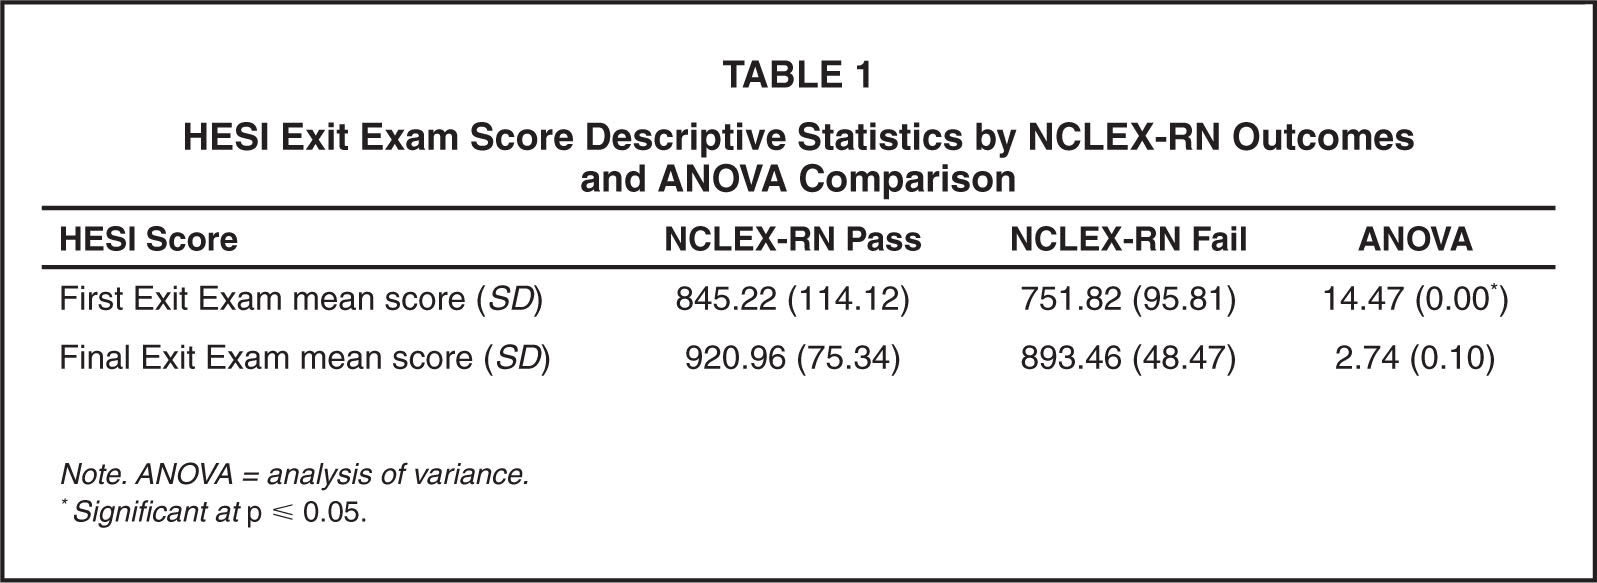 HESI Exit Exam Score Descriptive Statistics by NCLEX-RN Outcomes and Anova Comparison